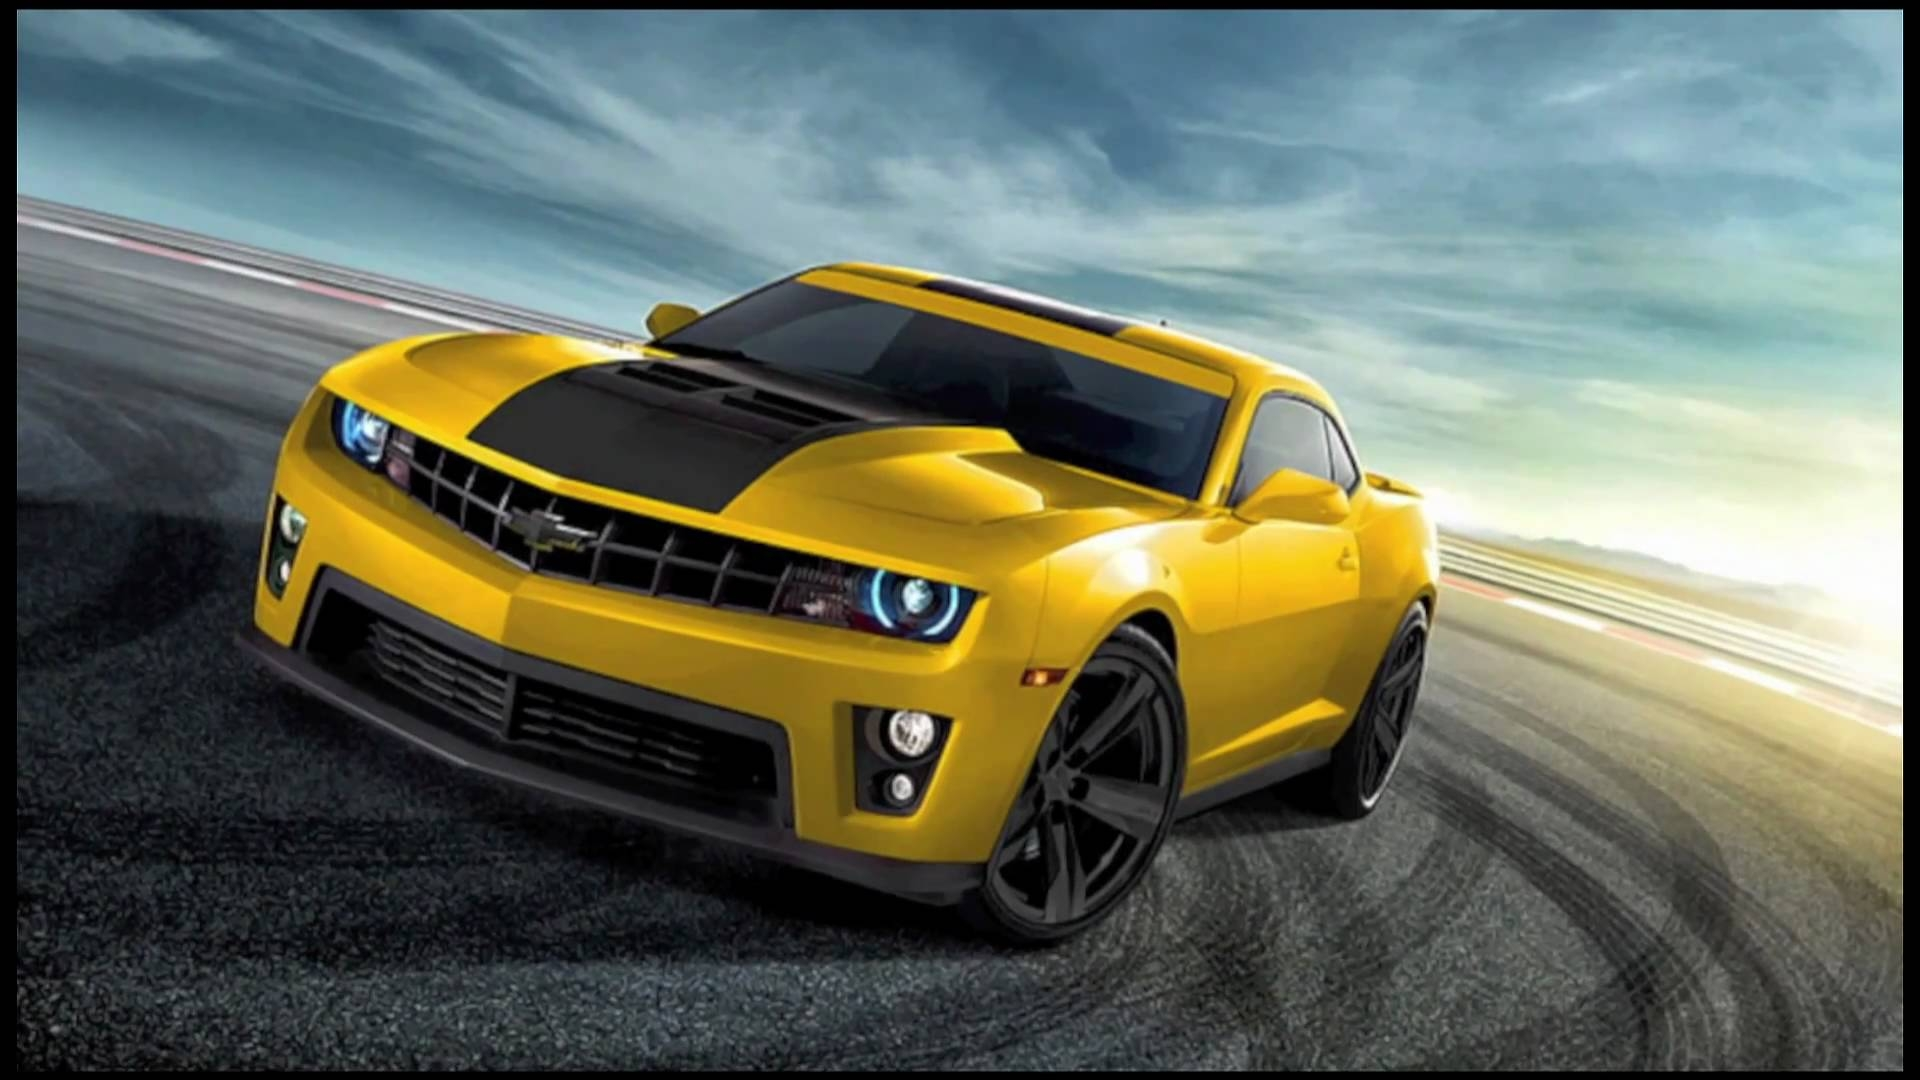 Muscle car camaro wallpaper free with high resolution wallpaper ... src